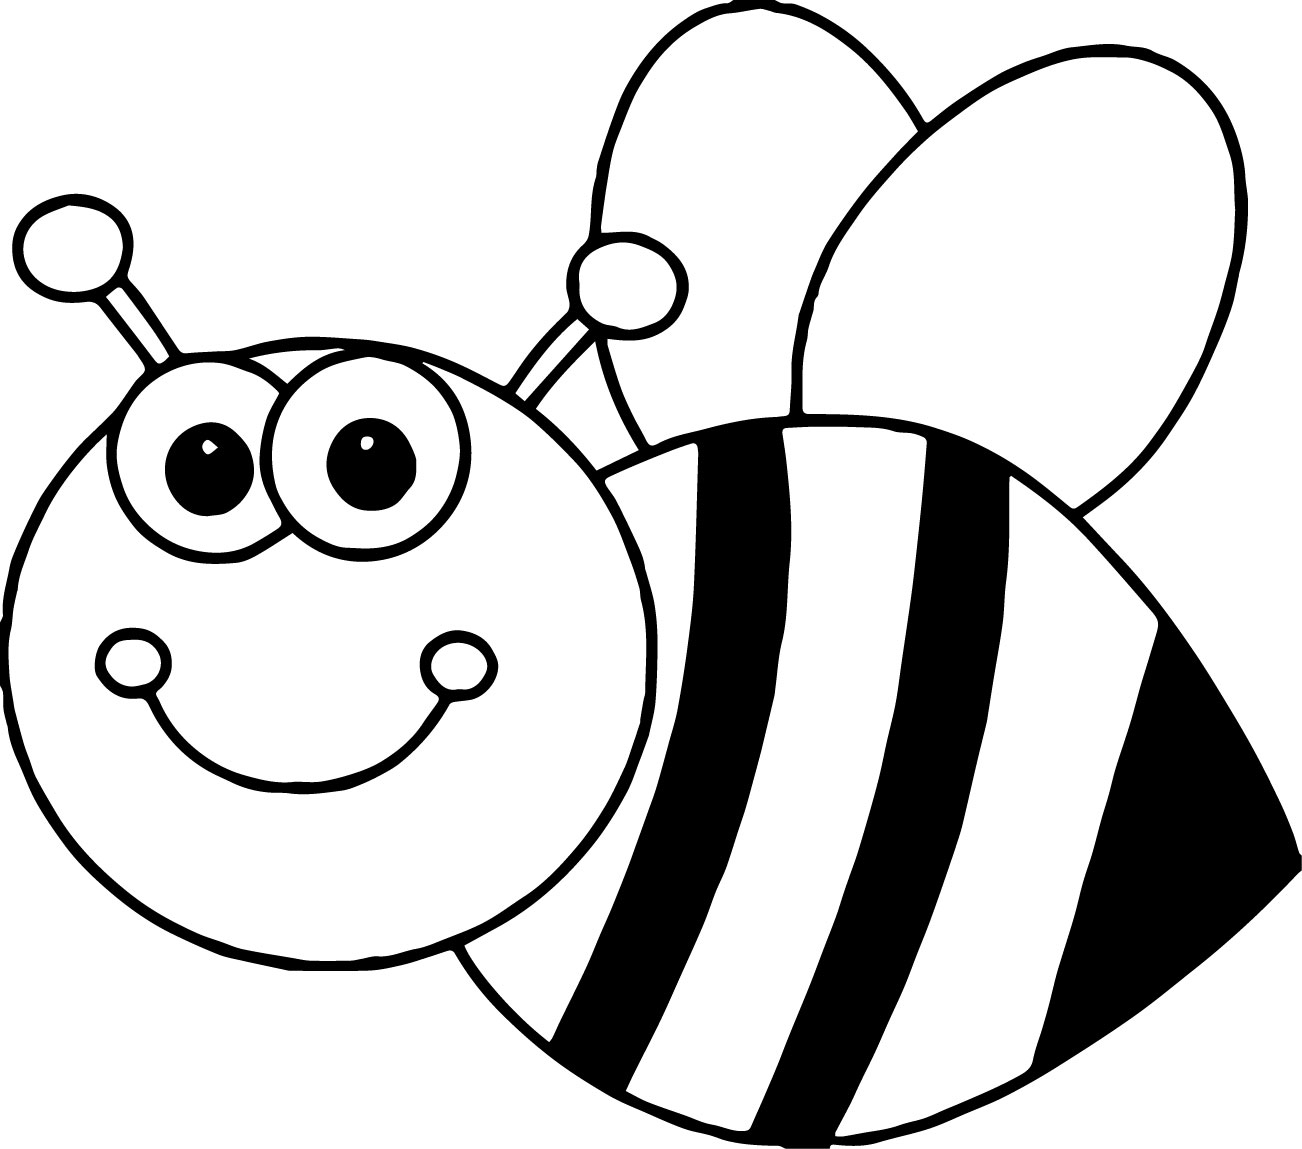 Bumble Bee Coloring Page - Bumble Bee Transformer Coloring Pages Coloring Pages